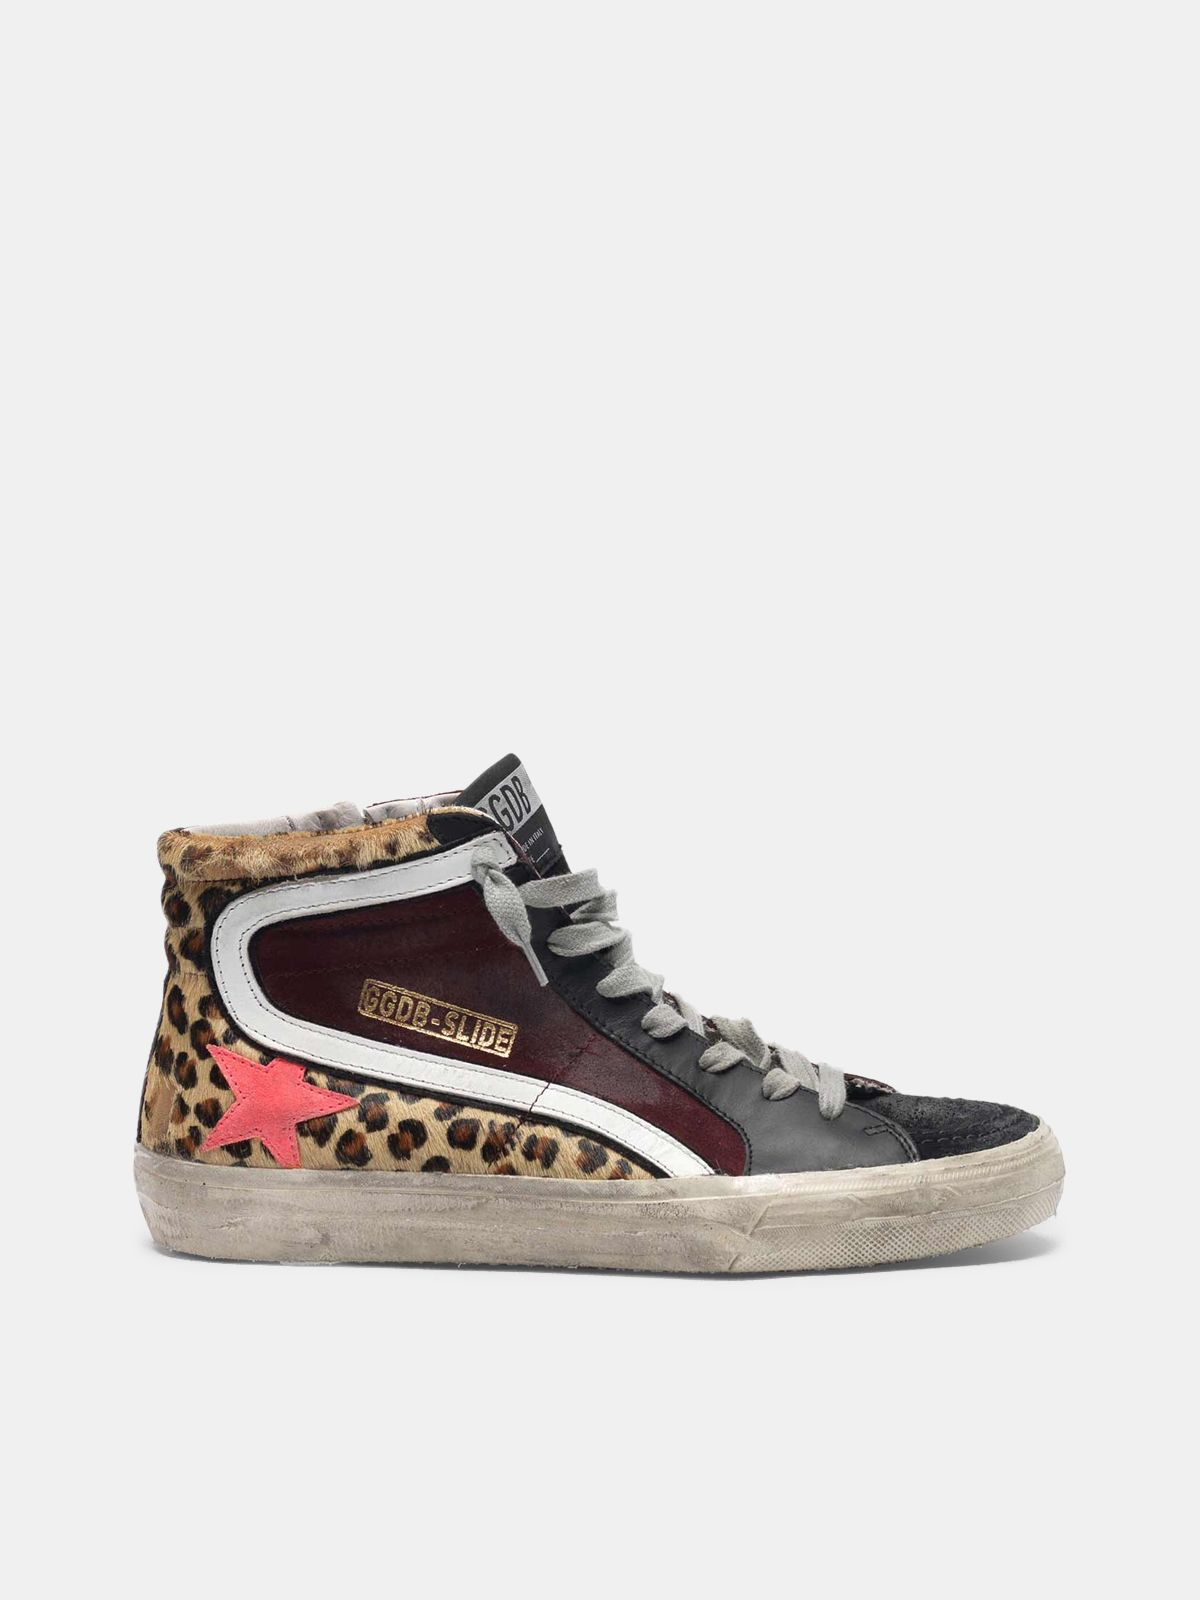 Golden Goose - Slide sneakers in leopard print pony skin and suede with pink star in